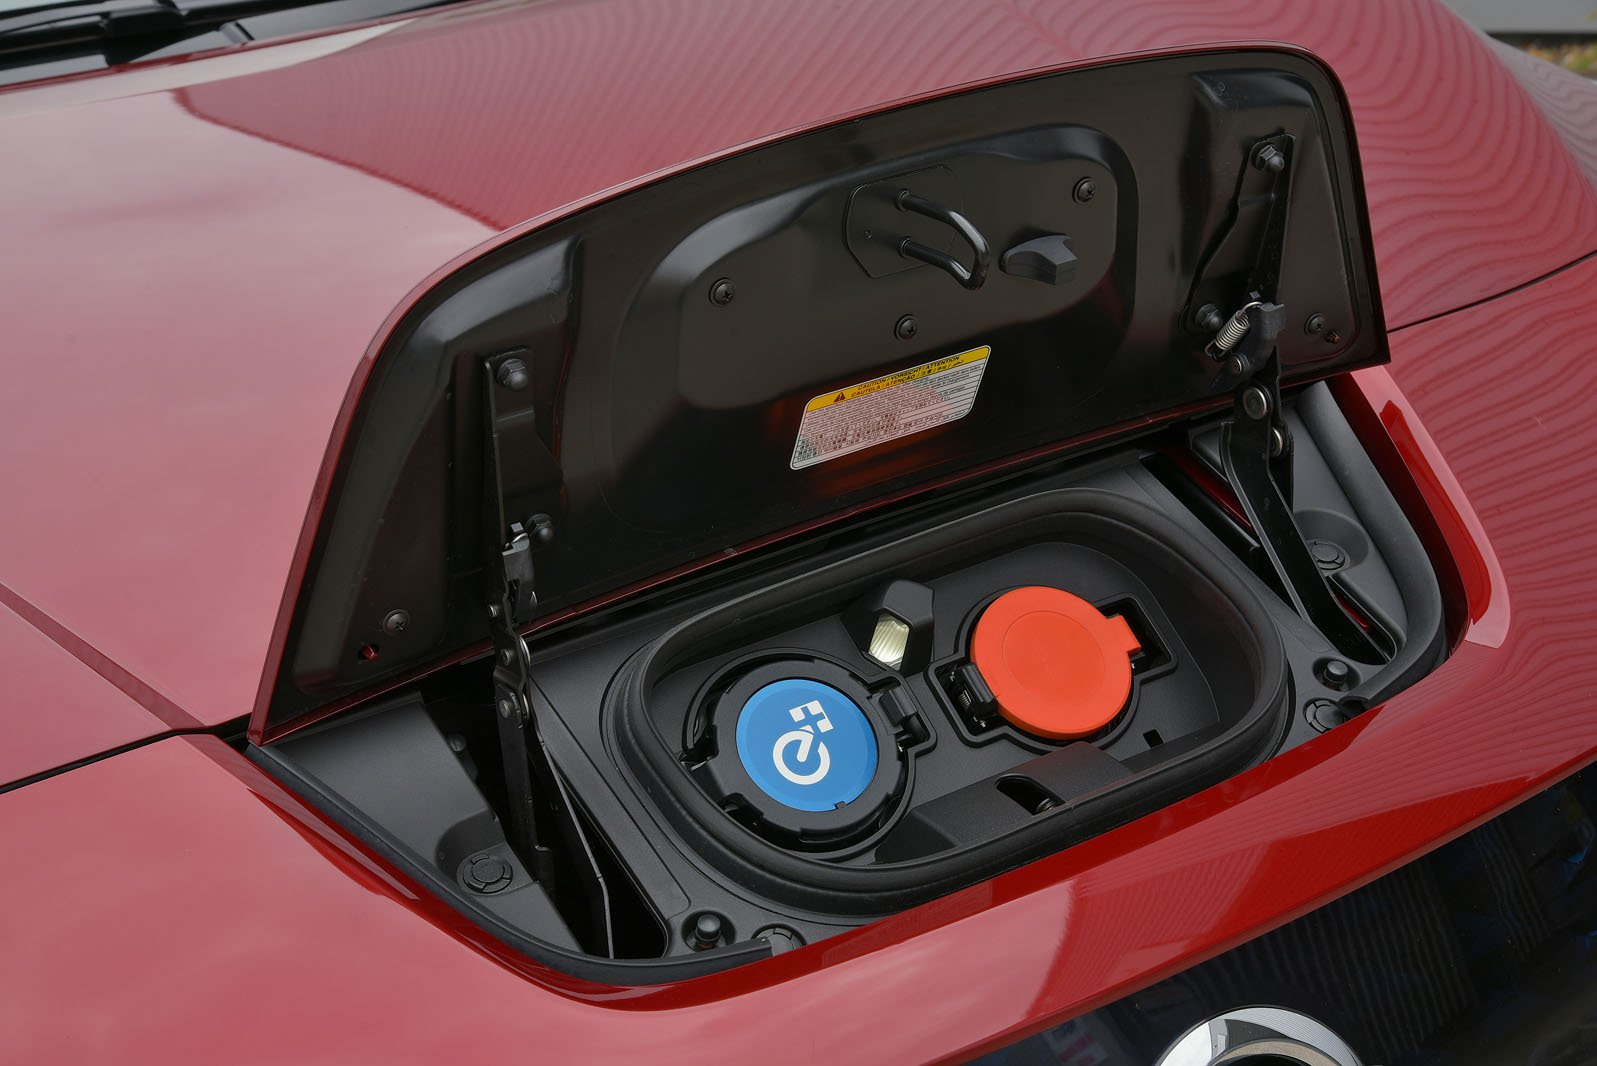 2019 Nissan Leaf 62kWh charging ports